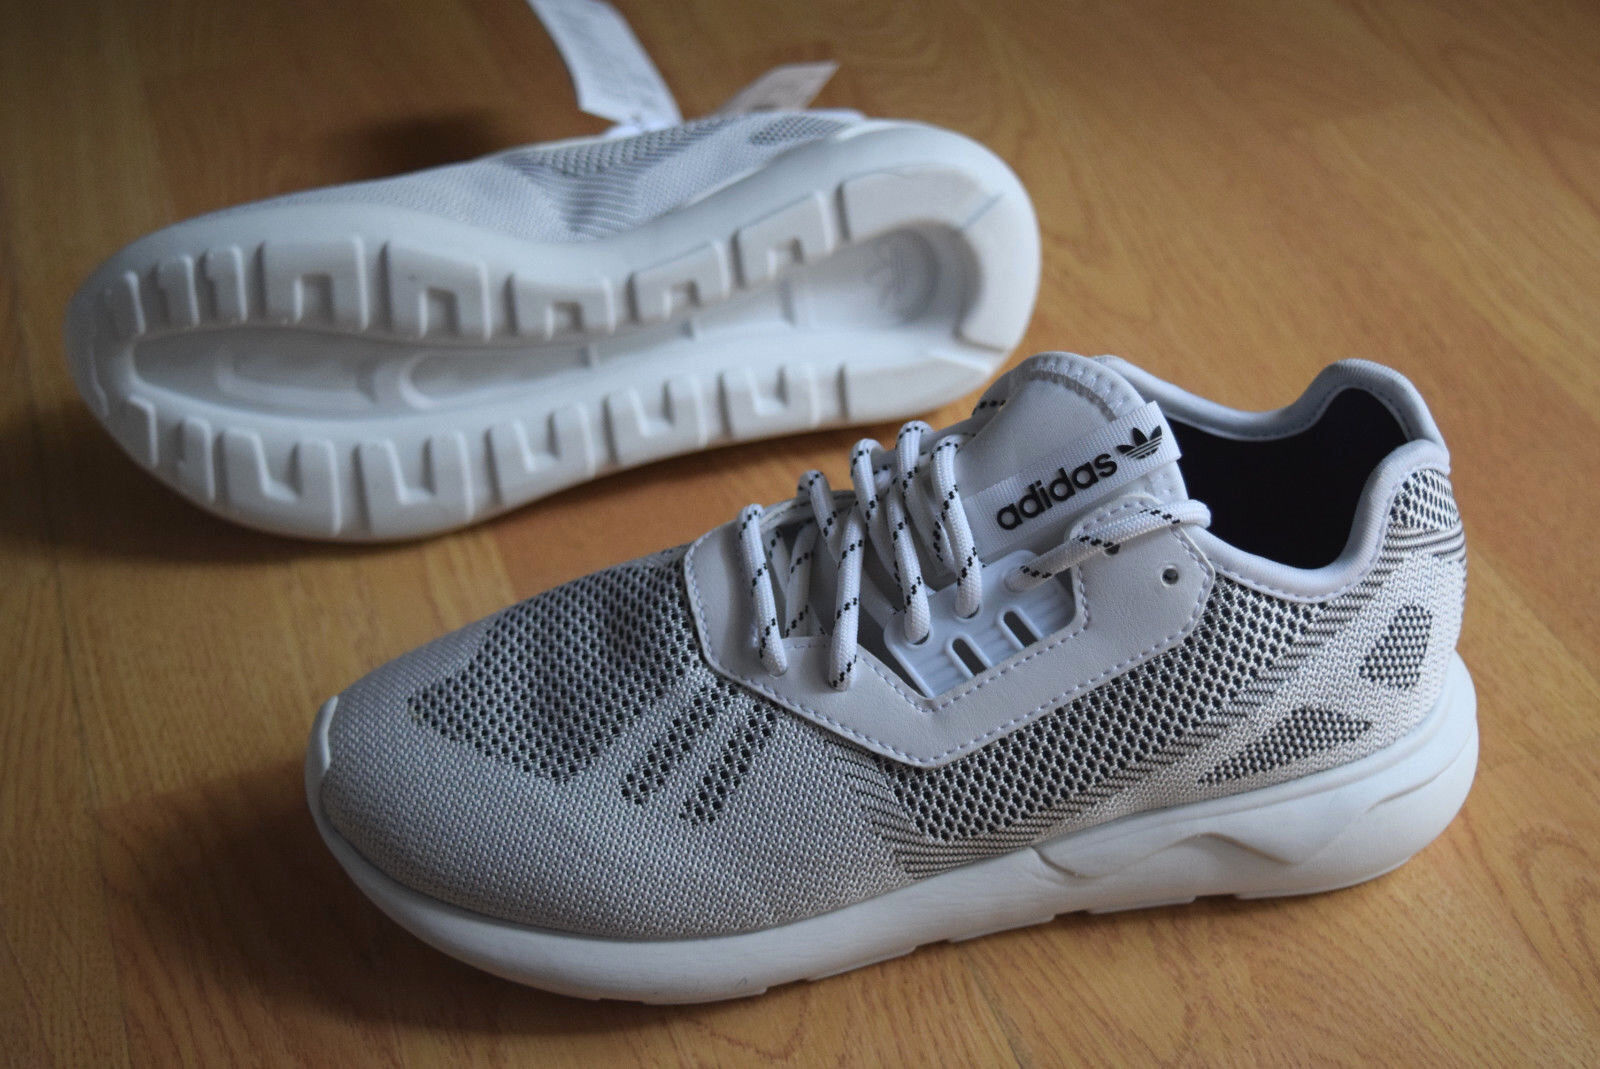 ADIDAS Tubular RUNNER Weave 41 46,5 s79414 Shadow viral radiale ZX Yeezy Flux PK